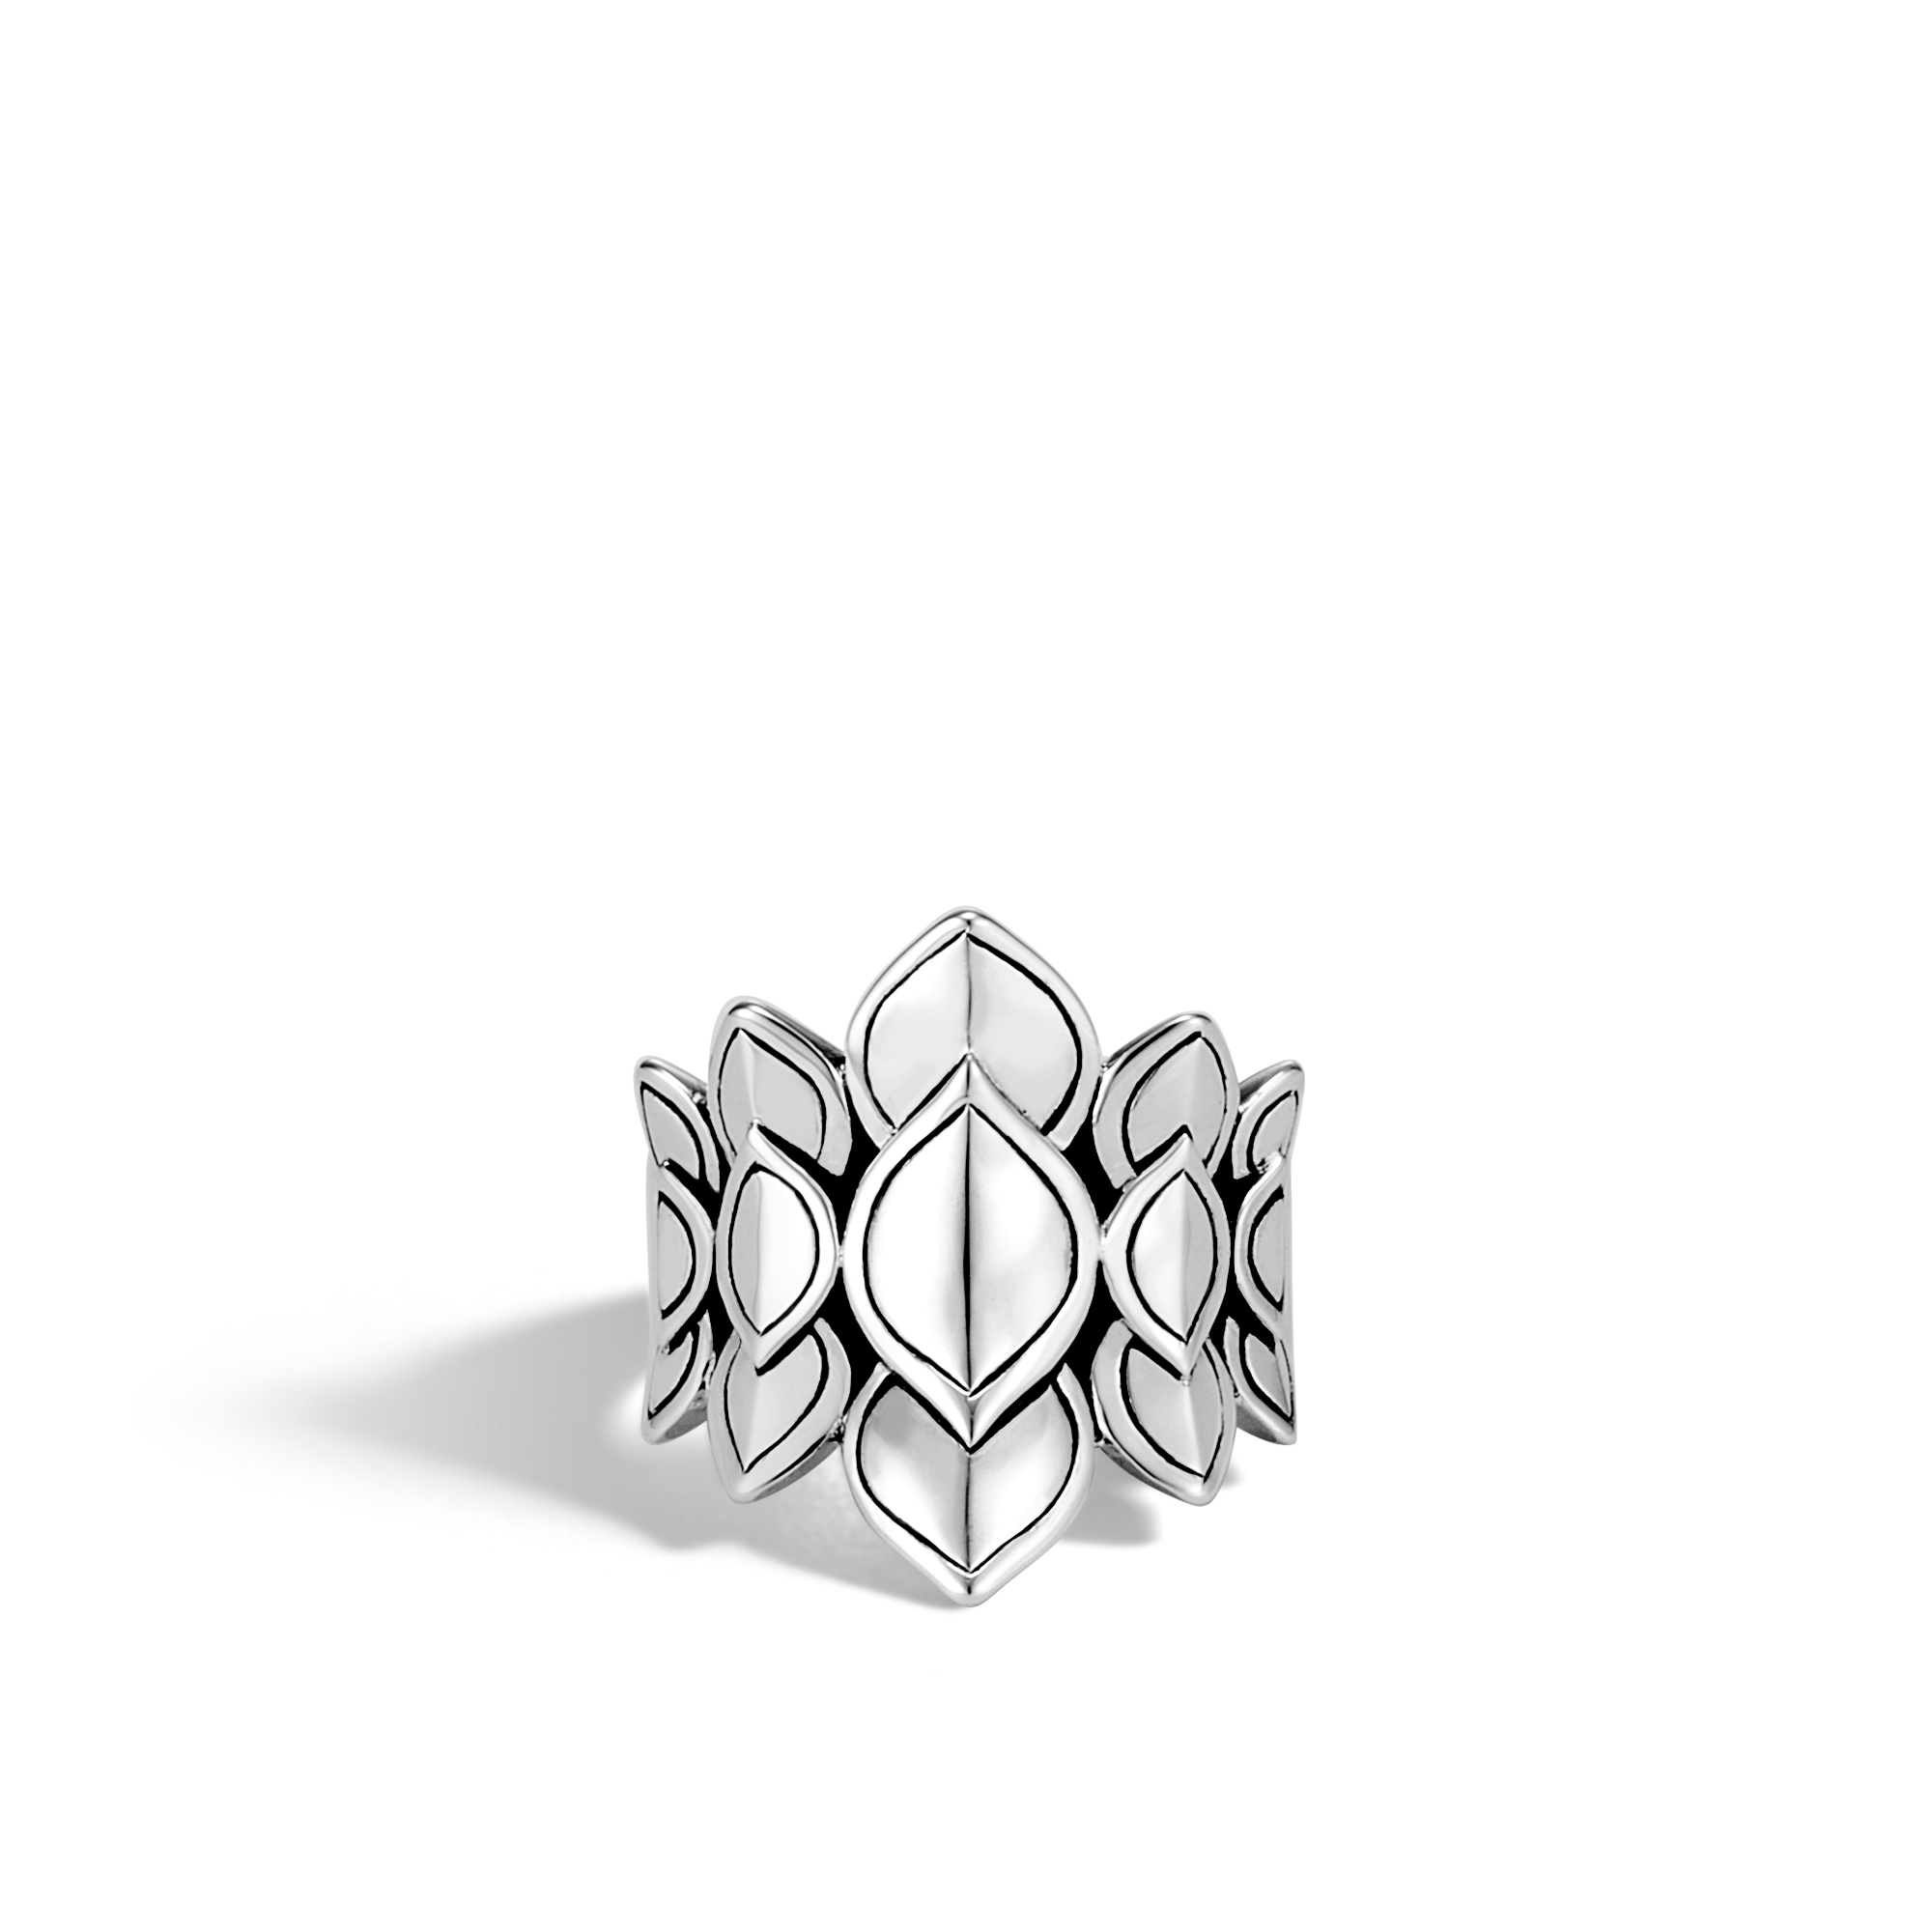 Legends Naga Saddle Ring in Silver, , large